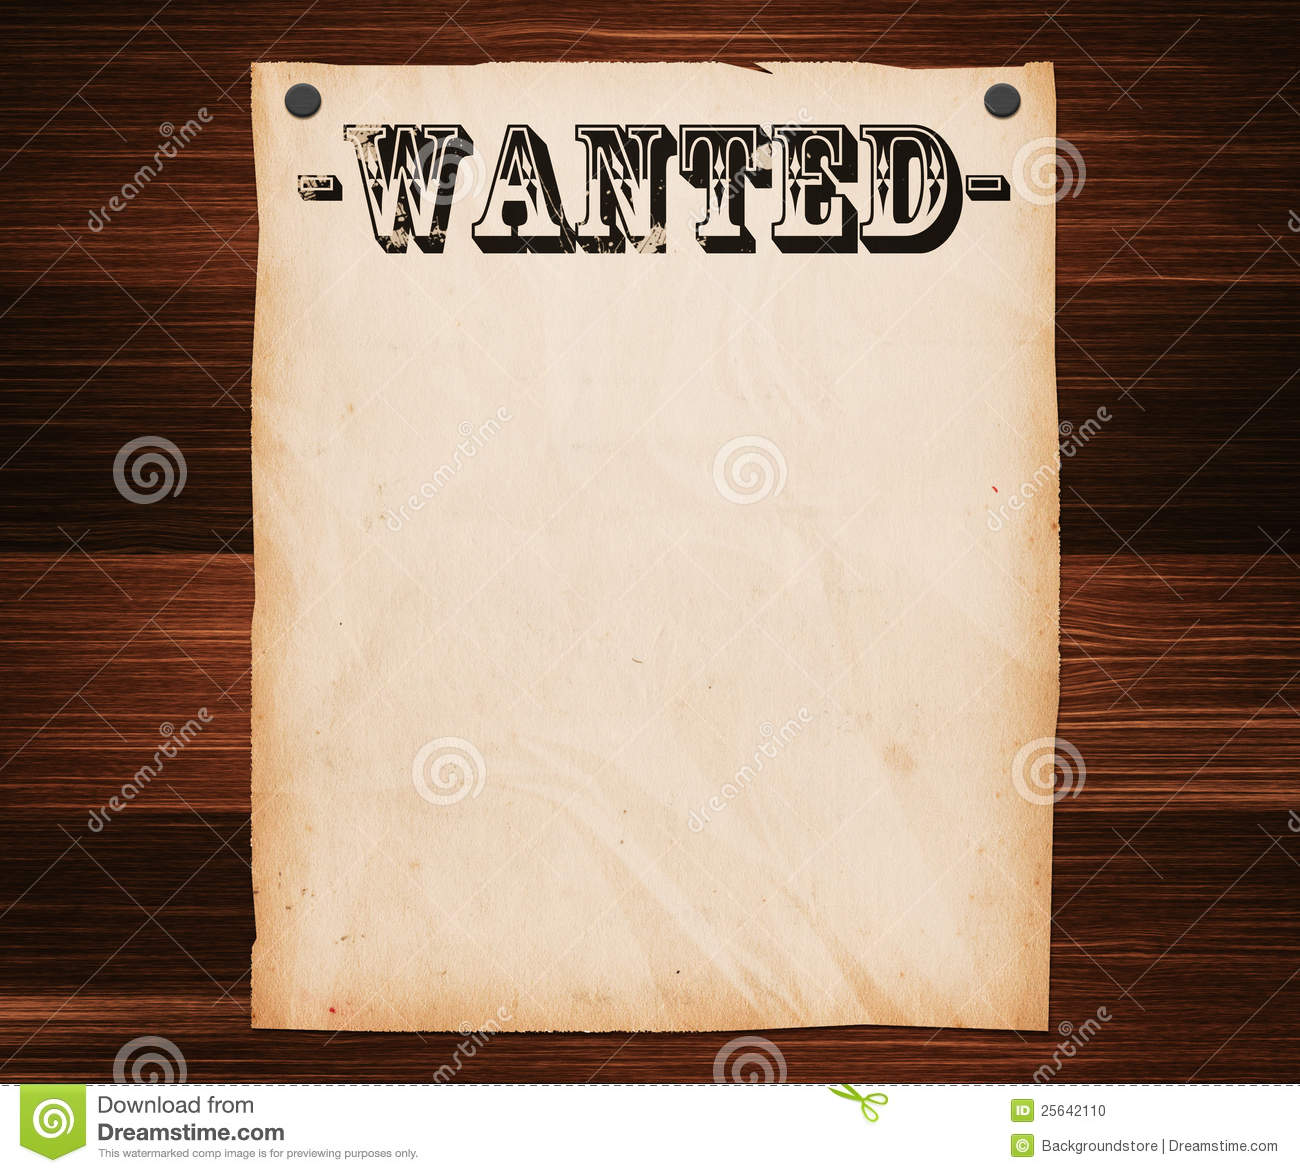 Wanted Poster On Wooden Wall Stock Photo - Image of grain, plank ...